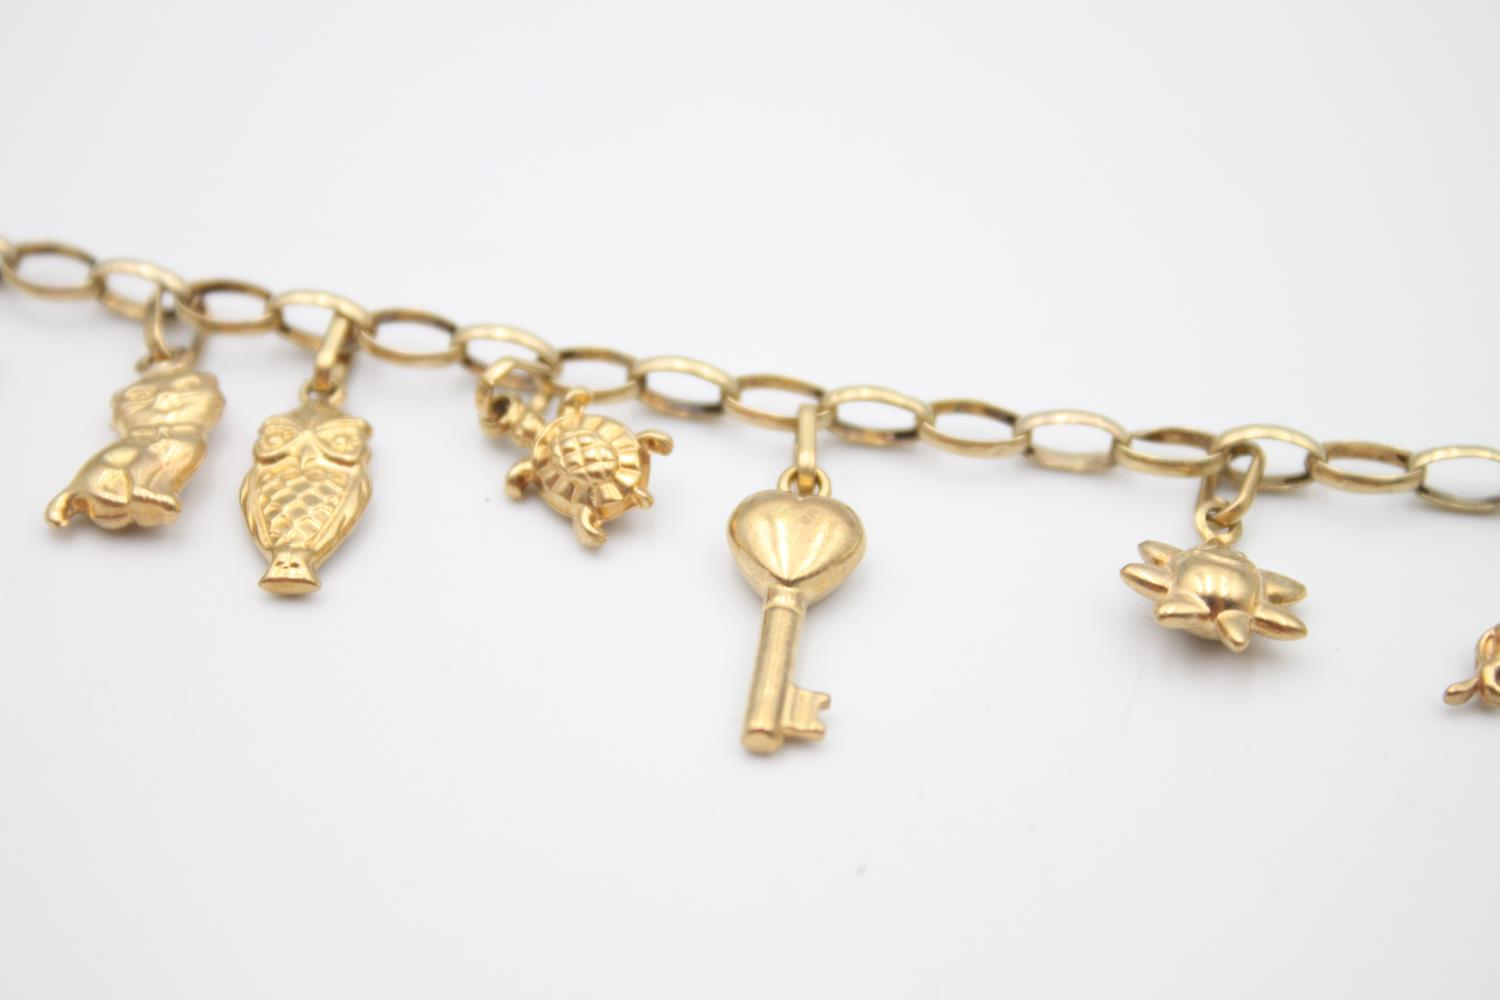 vintage 9ct gold rolo link charm bracelet with a variety of charms 5.7g - Image 4 of 7